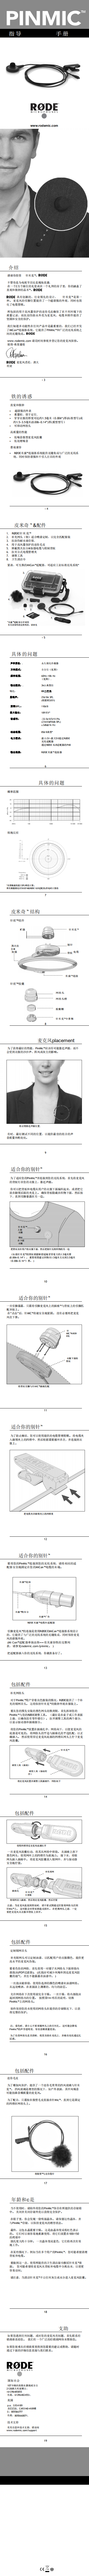 PinMic_product_manual_1_20_translate_Chinese_0.png